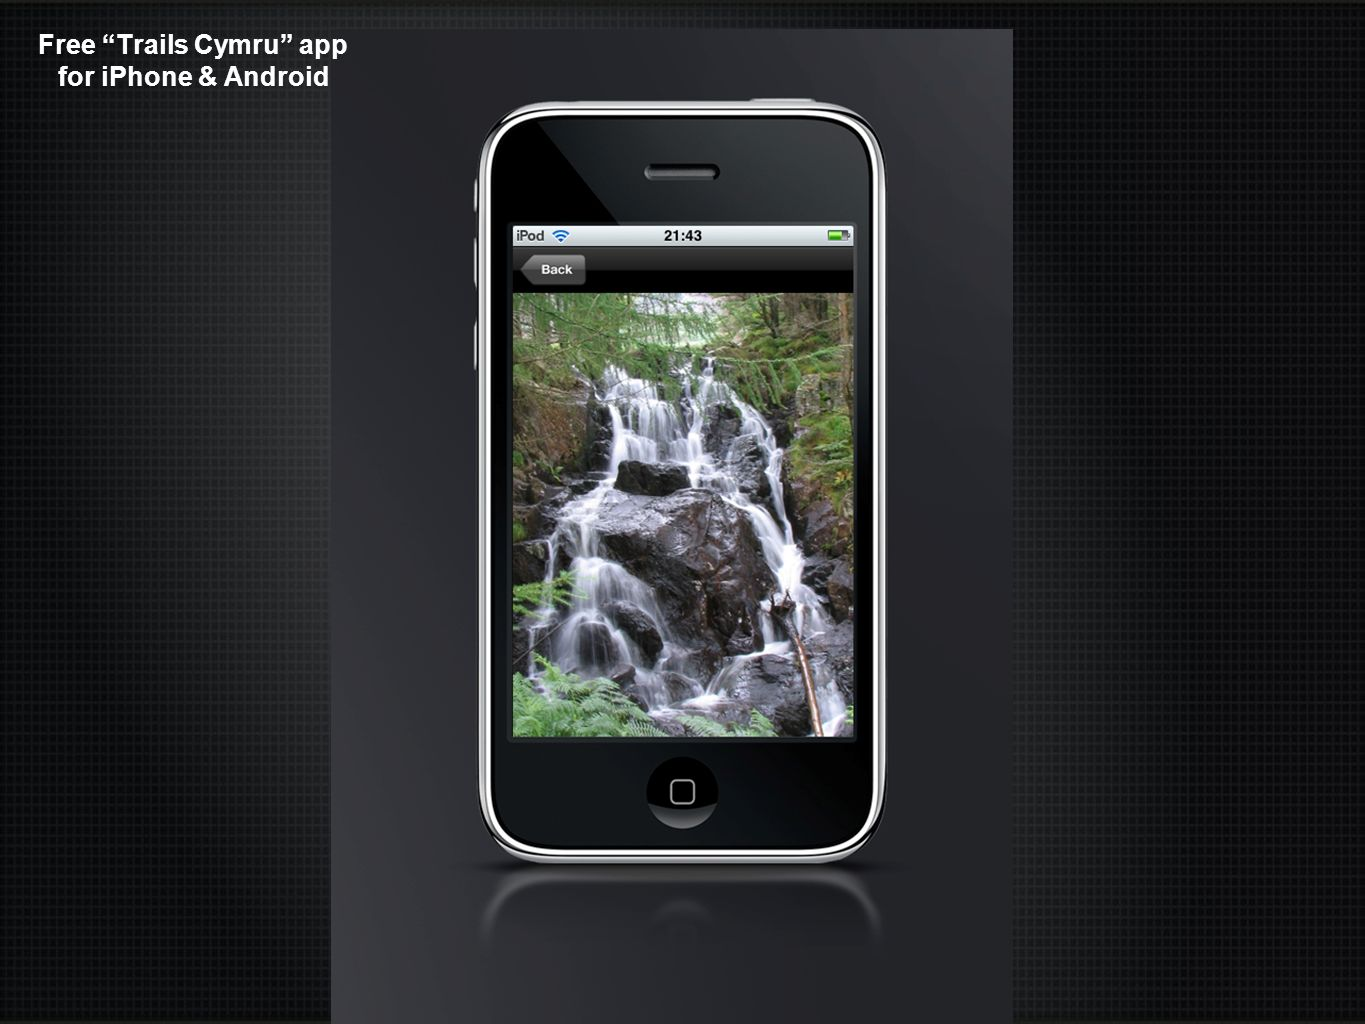 Free Trails Cymru app for iPhone & Android